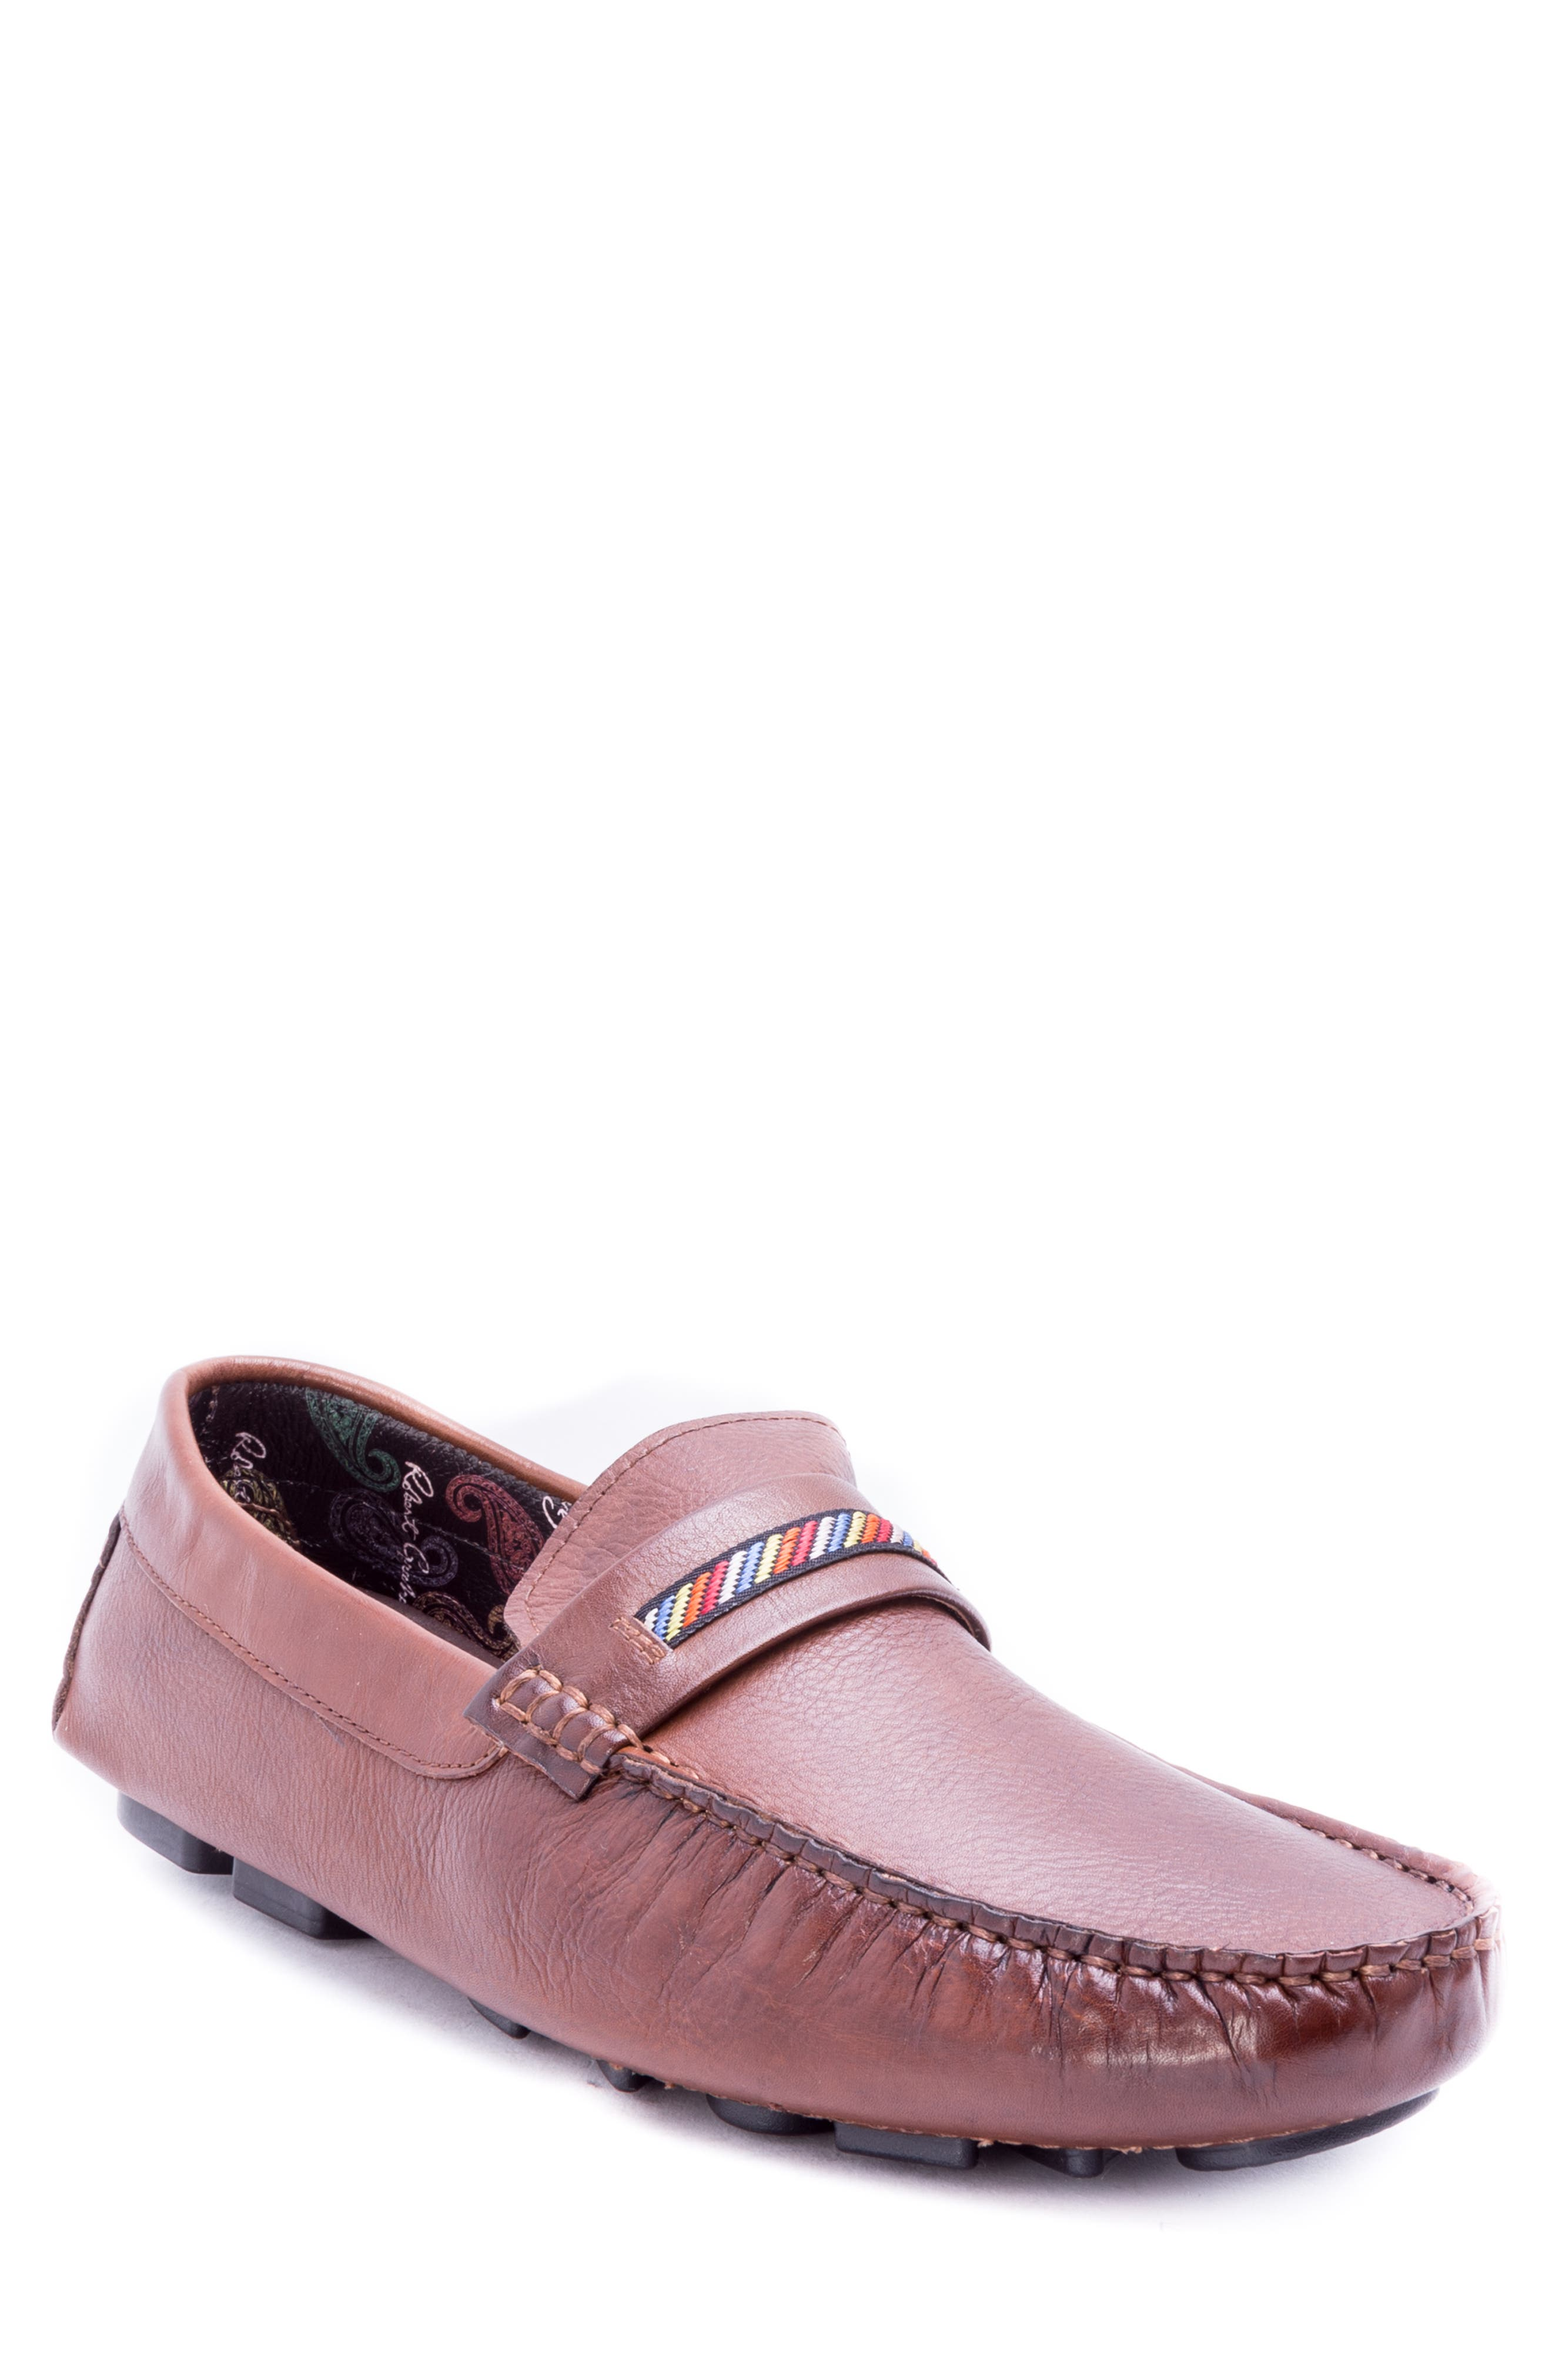 Hart Driving Moccasin,                         Main,                         color, COGNAC LEATHER